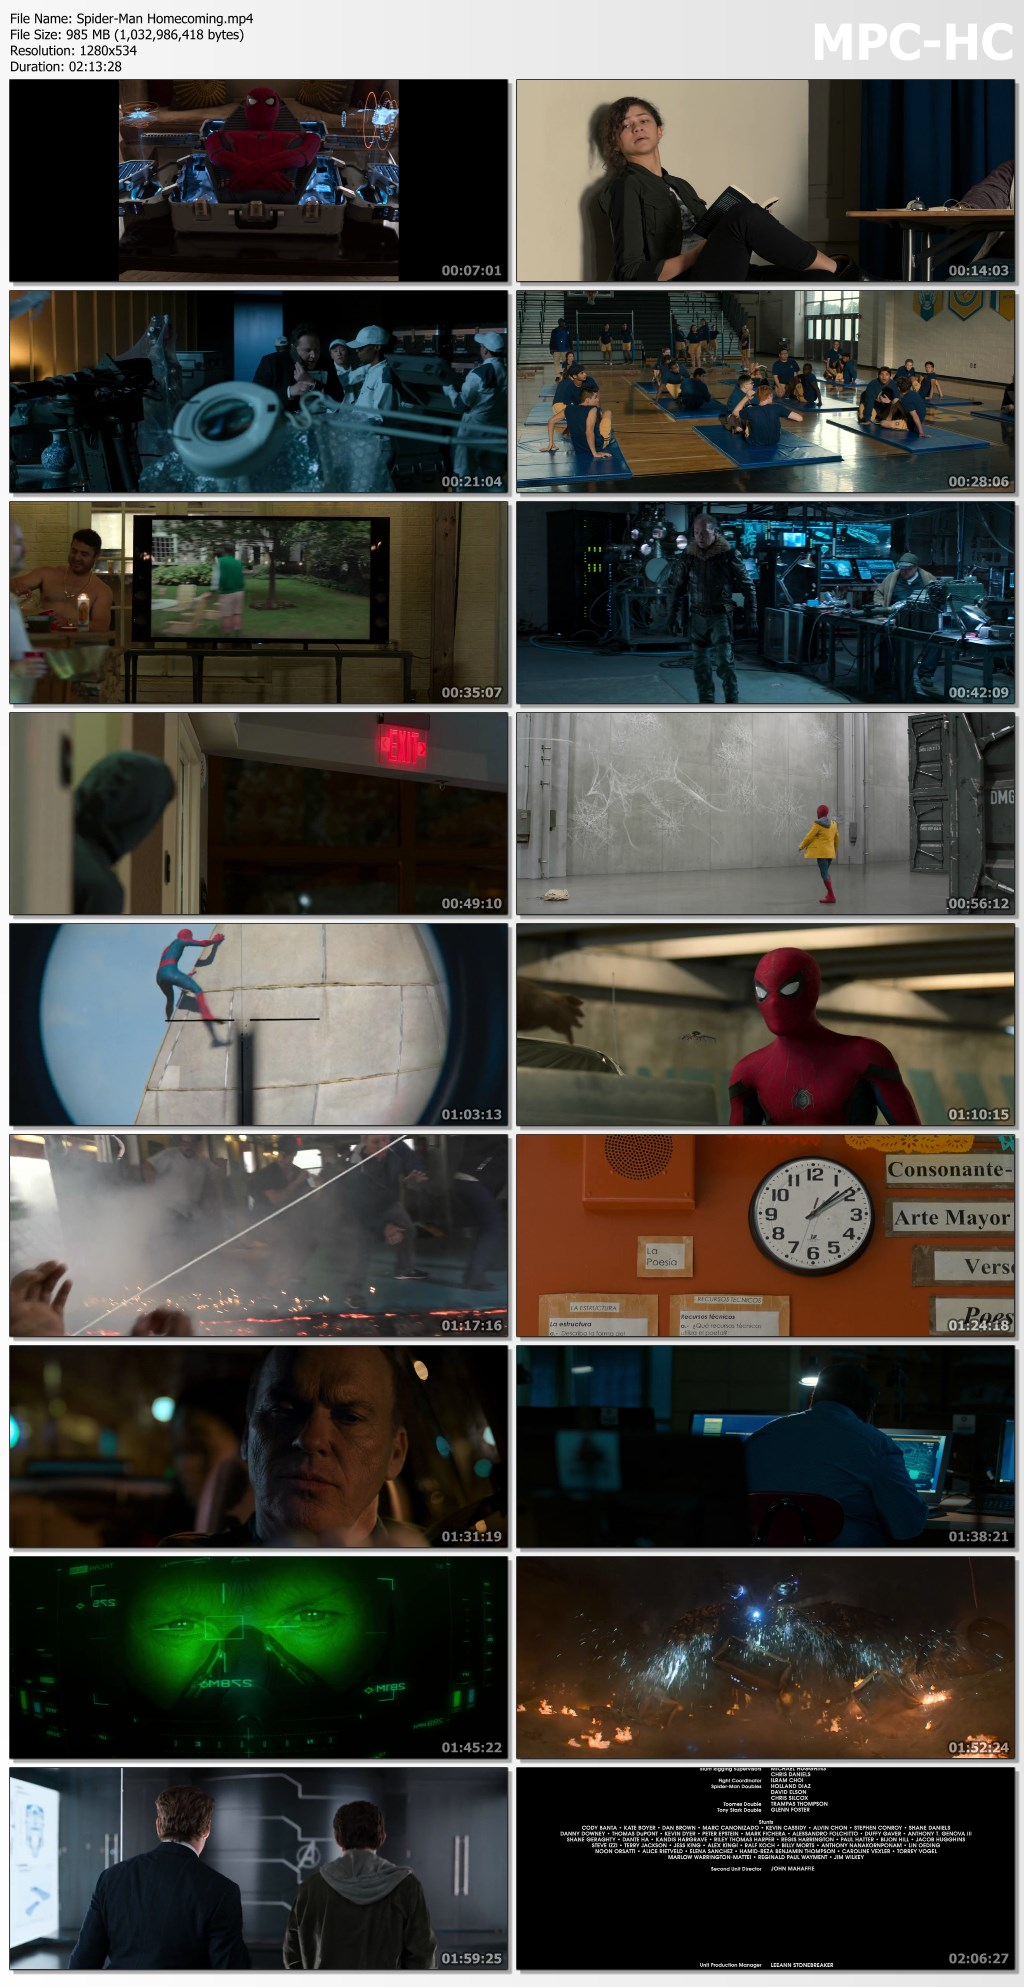 Spider Man Homecoming.mp4 thumbs